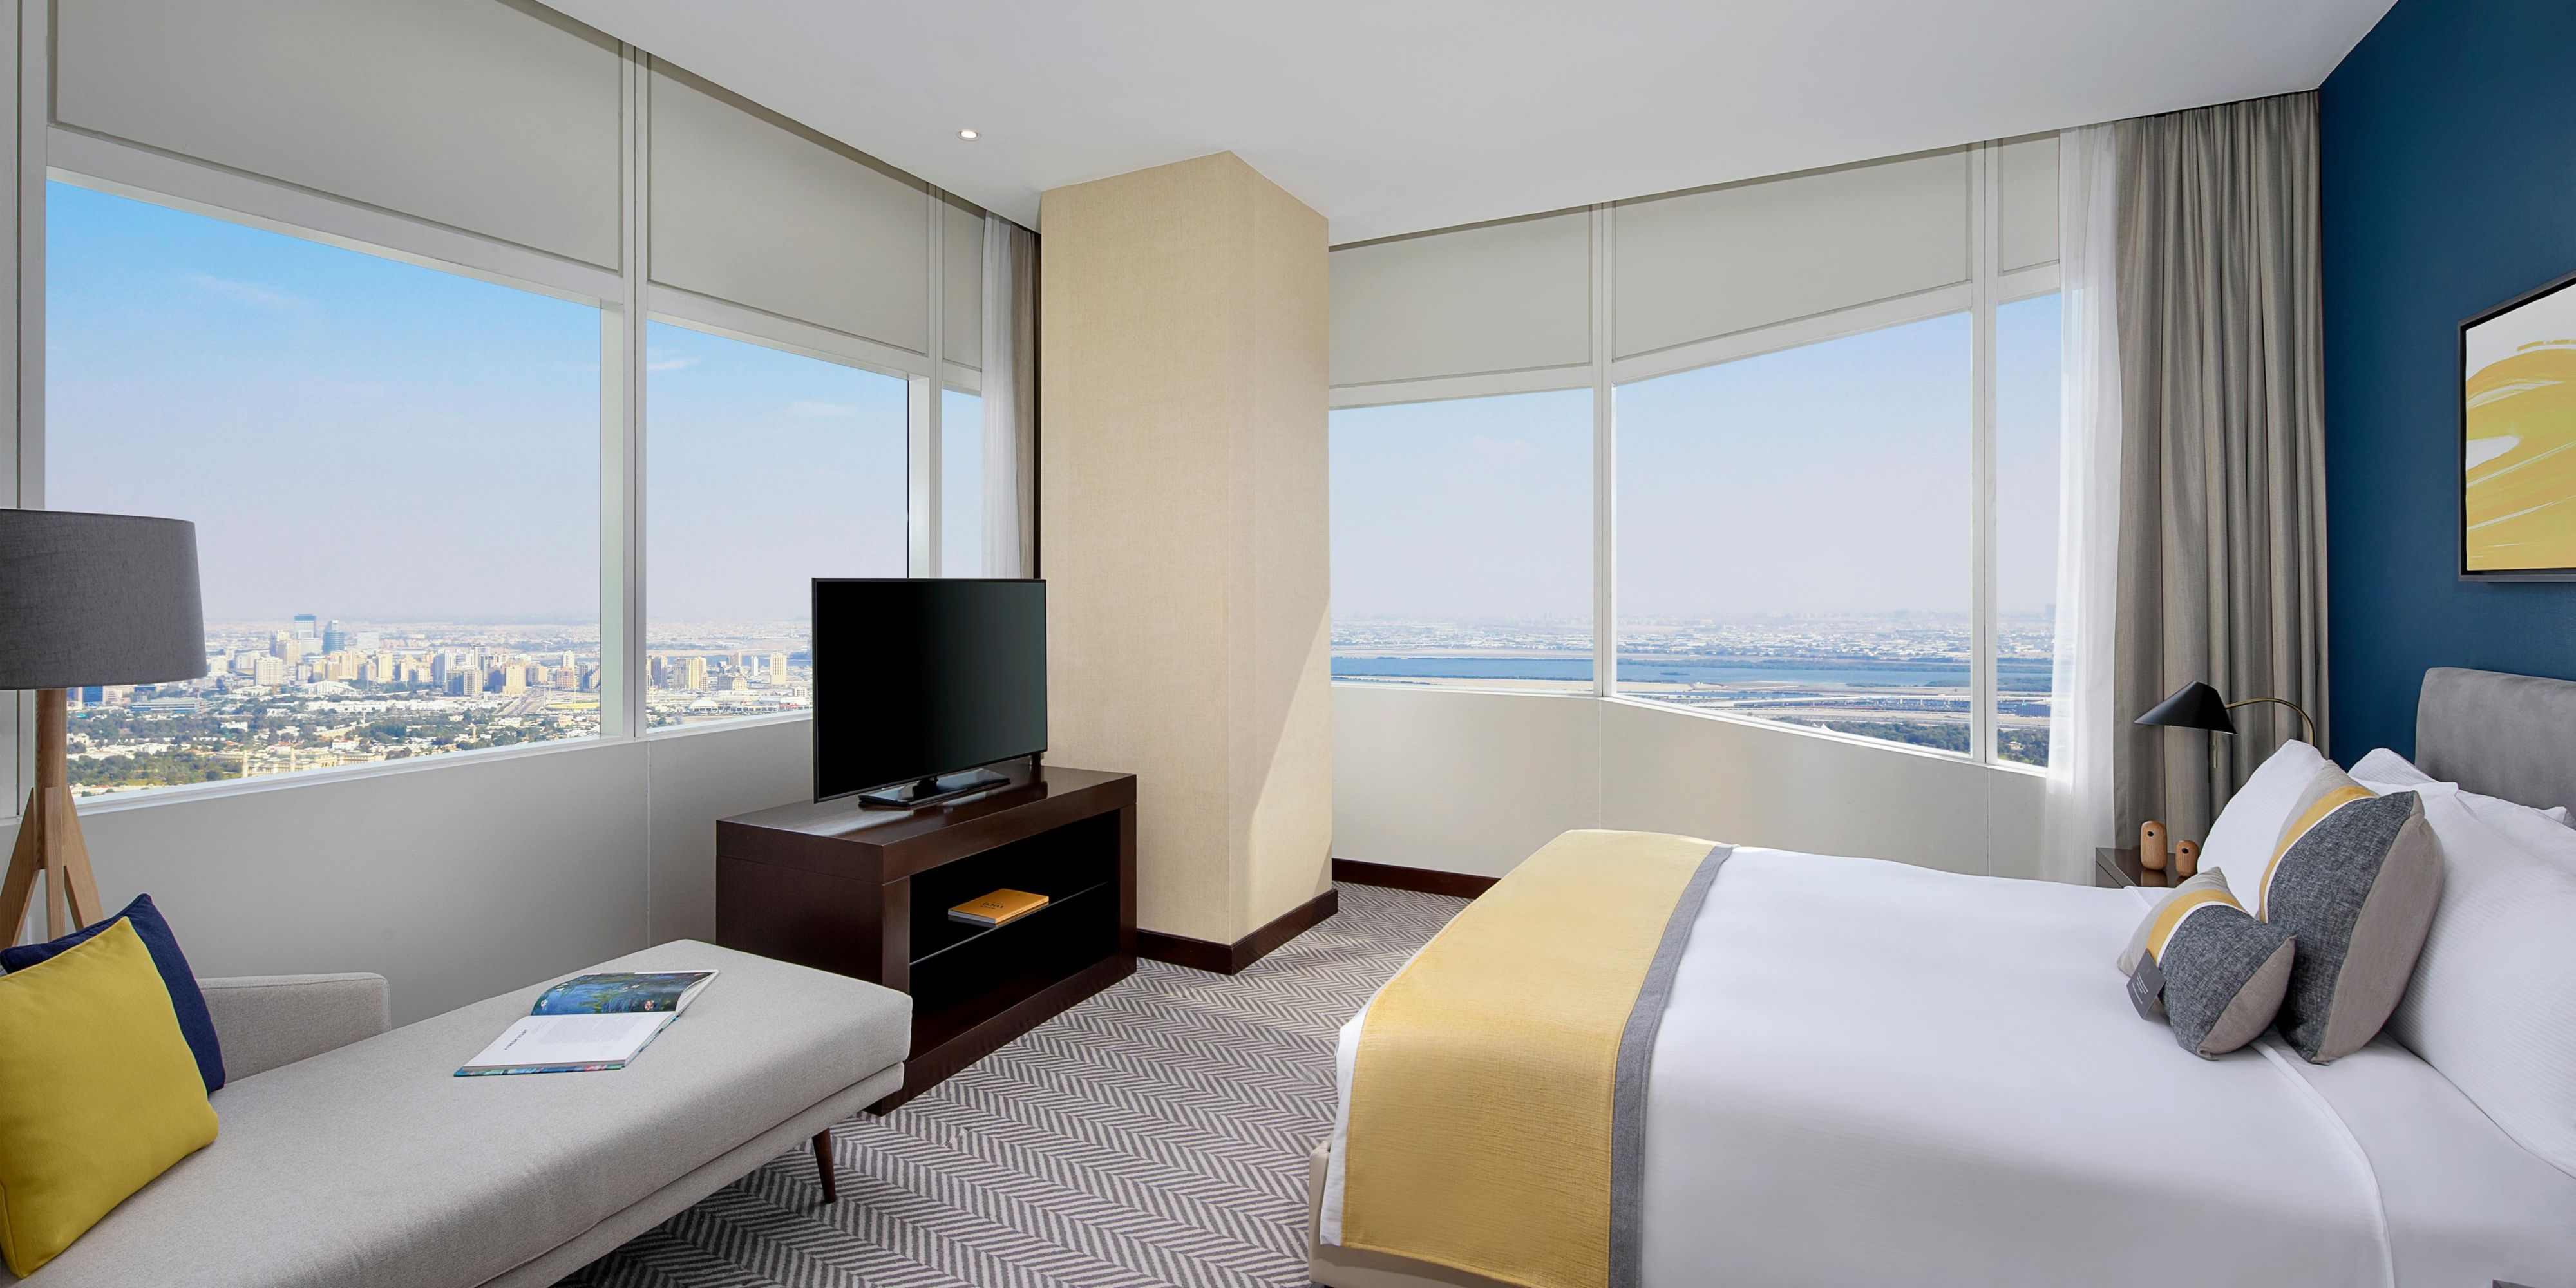 Executive Suite Scenic Bedroom, with views of Sheikh Zayed Road